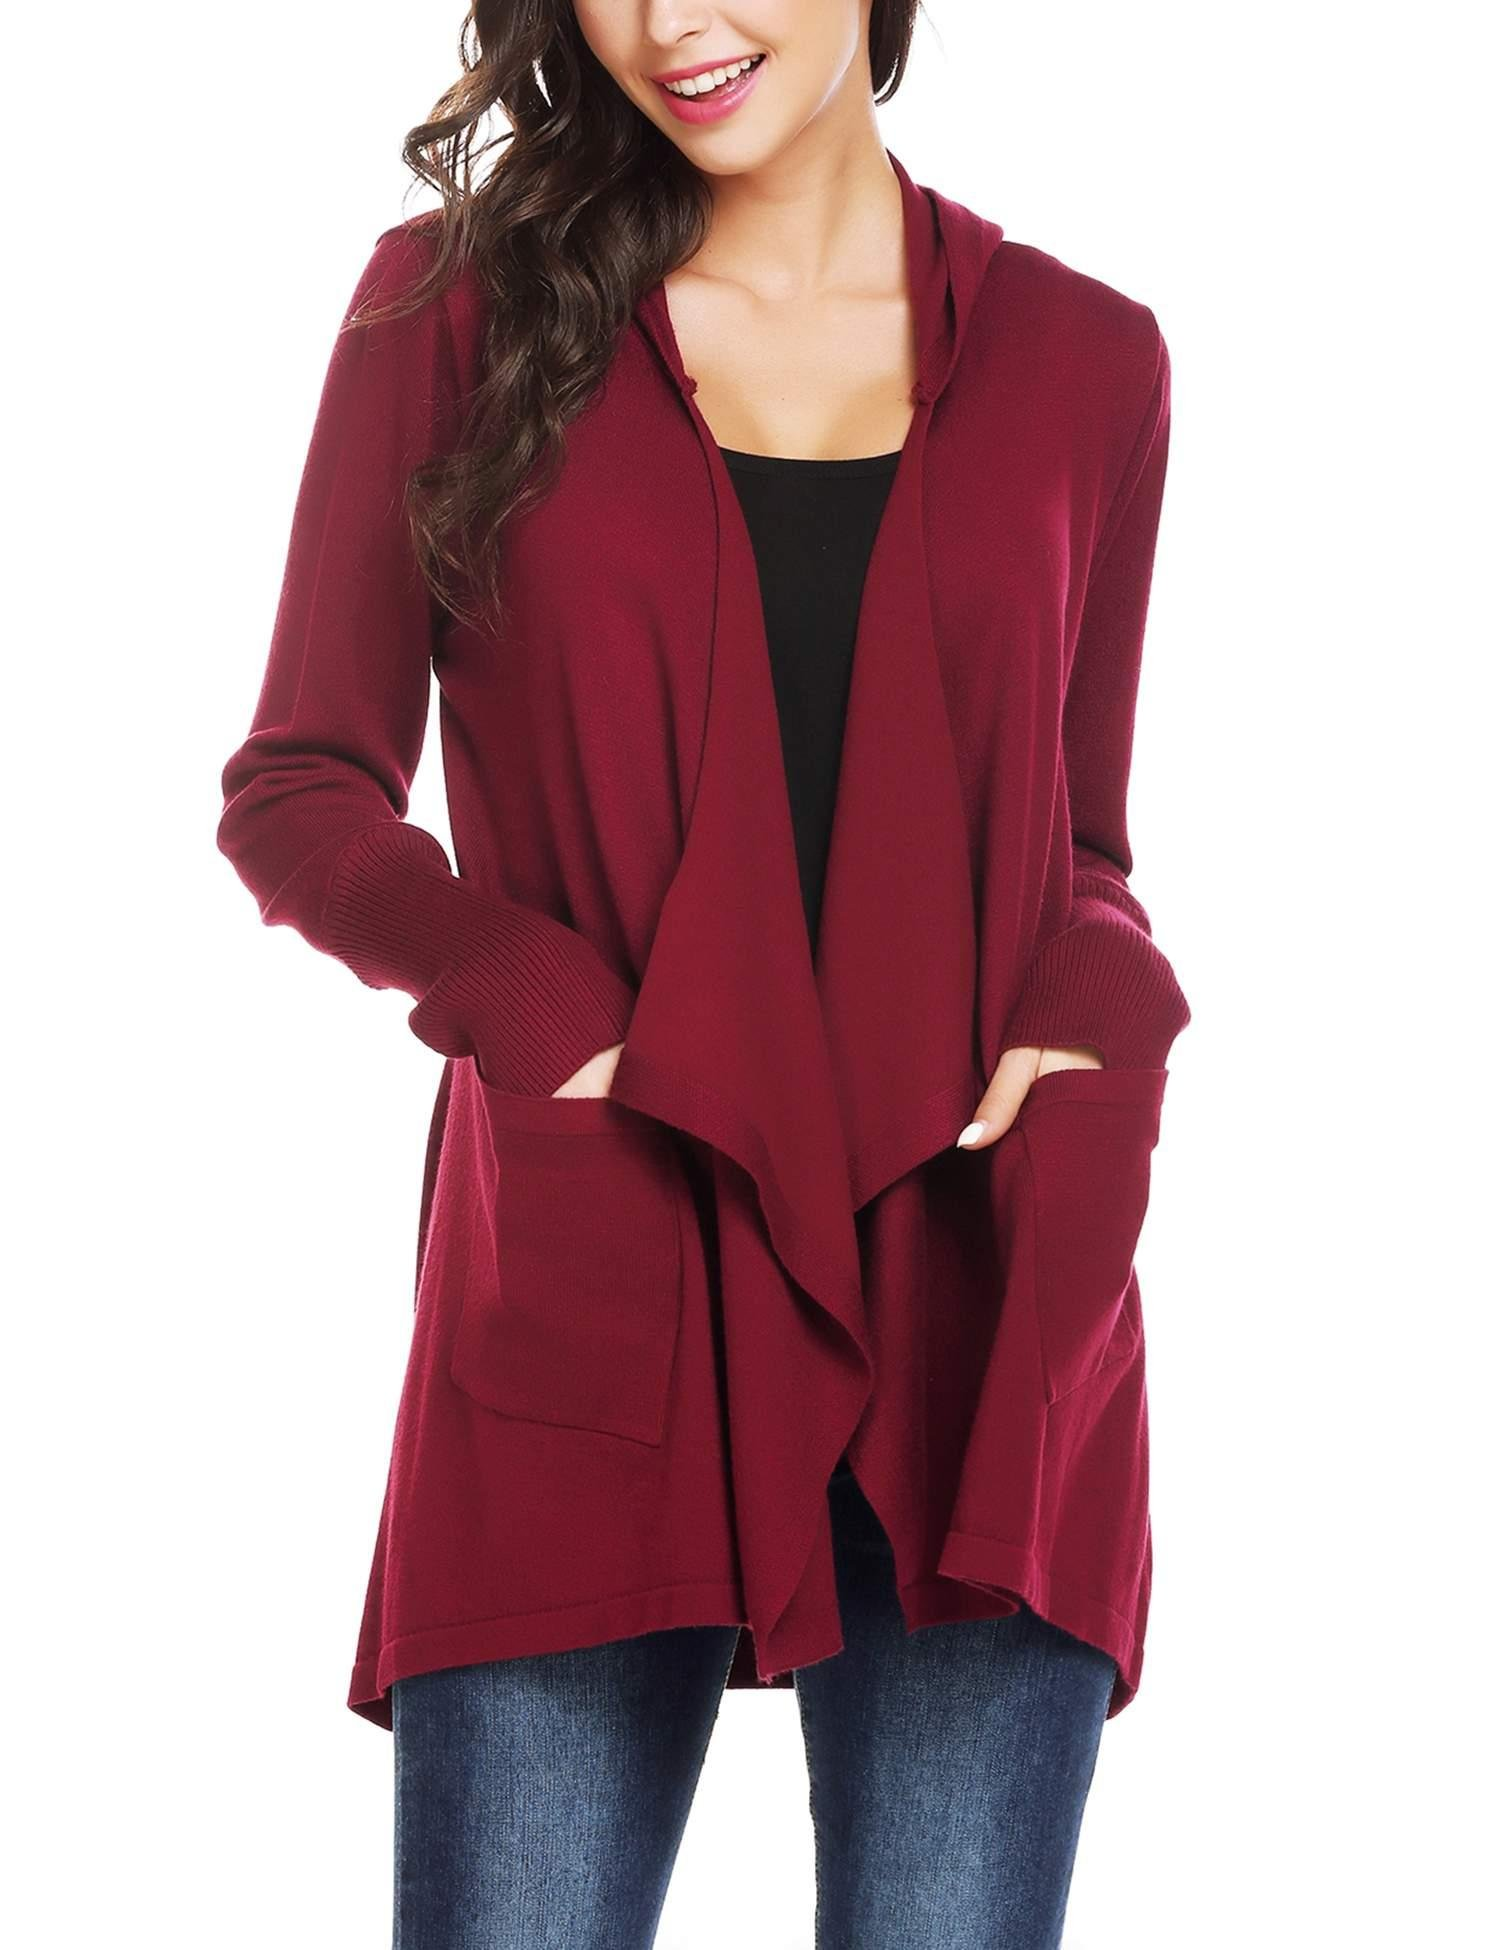 Mofavor Womens Open Front Casual Flowy Long Kimono Knit Cardigan Sweater With Pockets Wine Red S